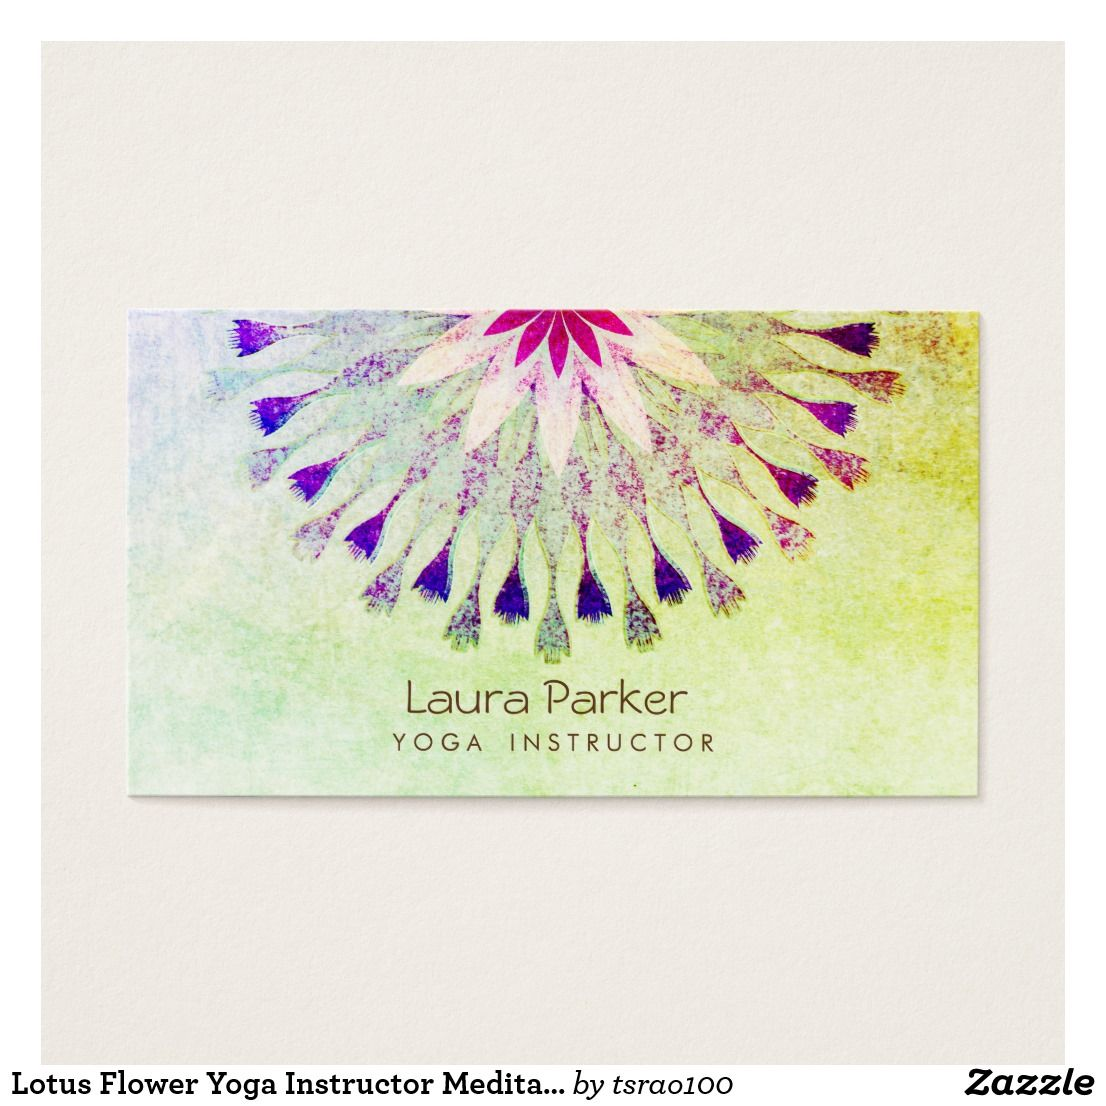 Lotus Flower Yoga Instructor Meditation Holistic Business Card ...